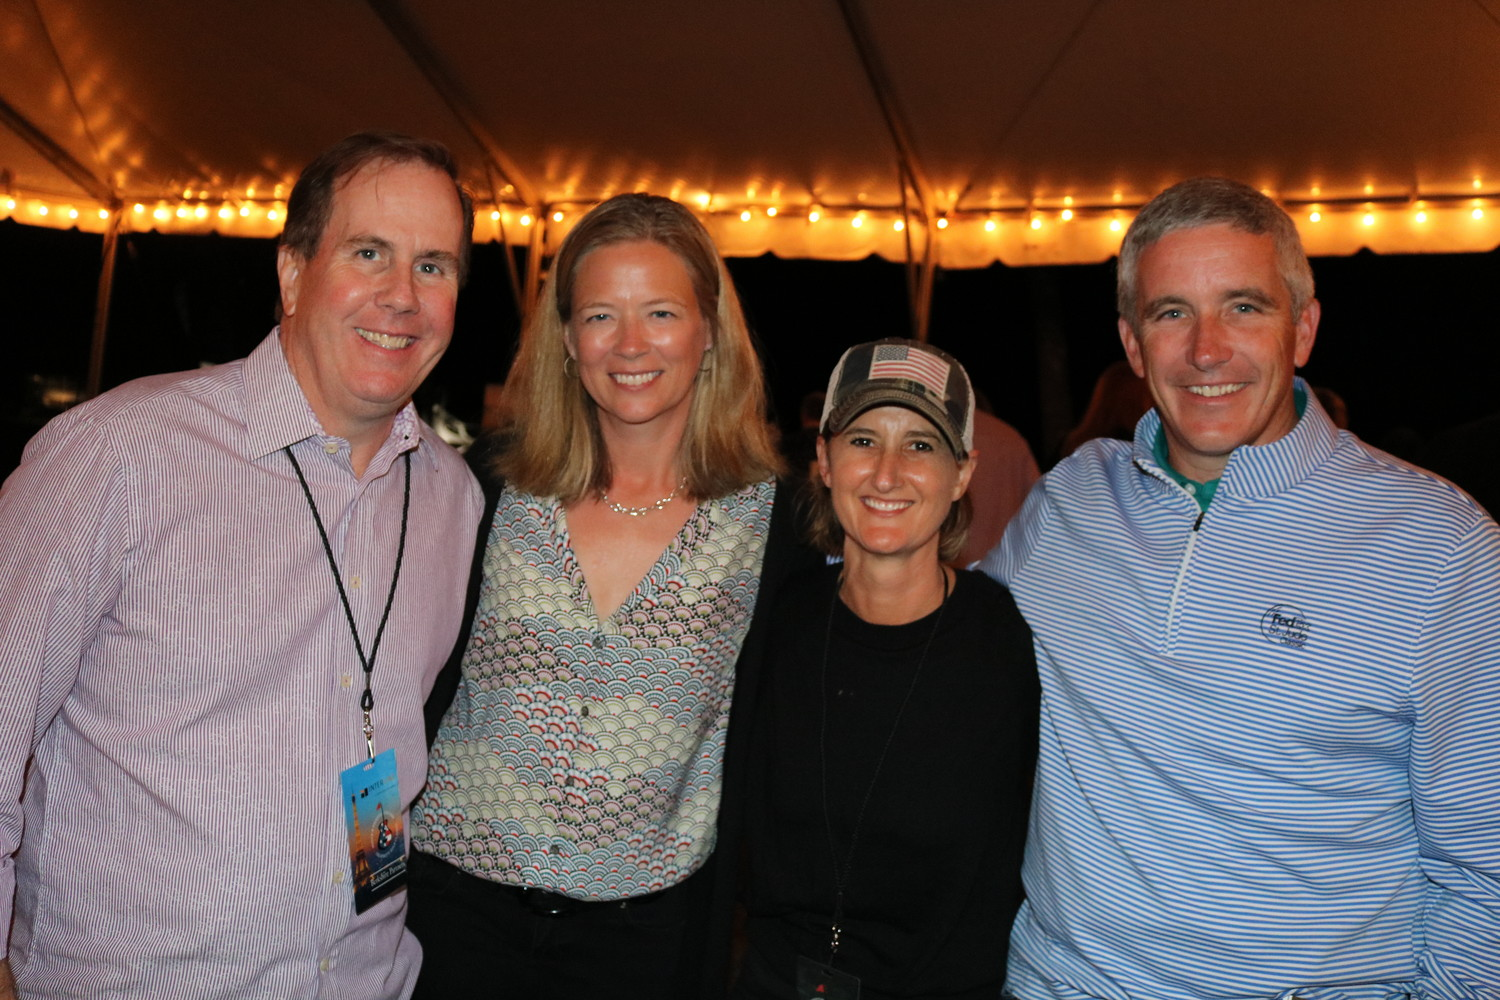 Mike Grebe, Susan Monahan, Willow Logue and PGA Tour Commissioner Jay Monahan before the concert